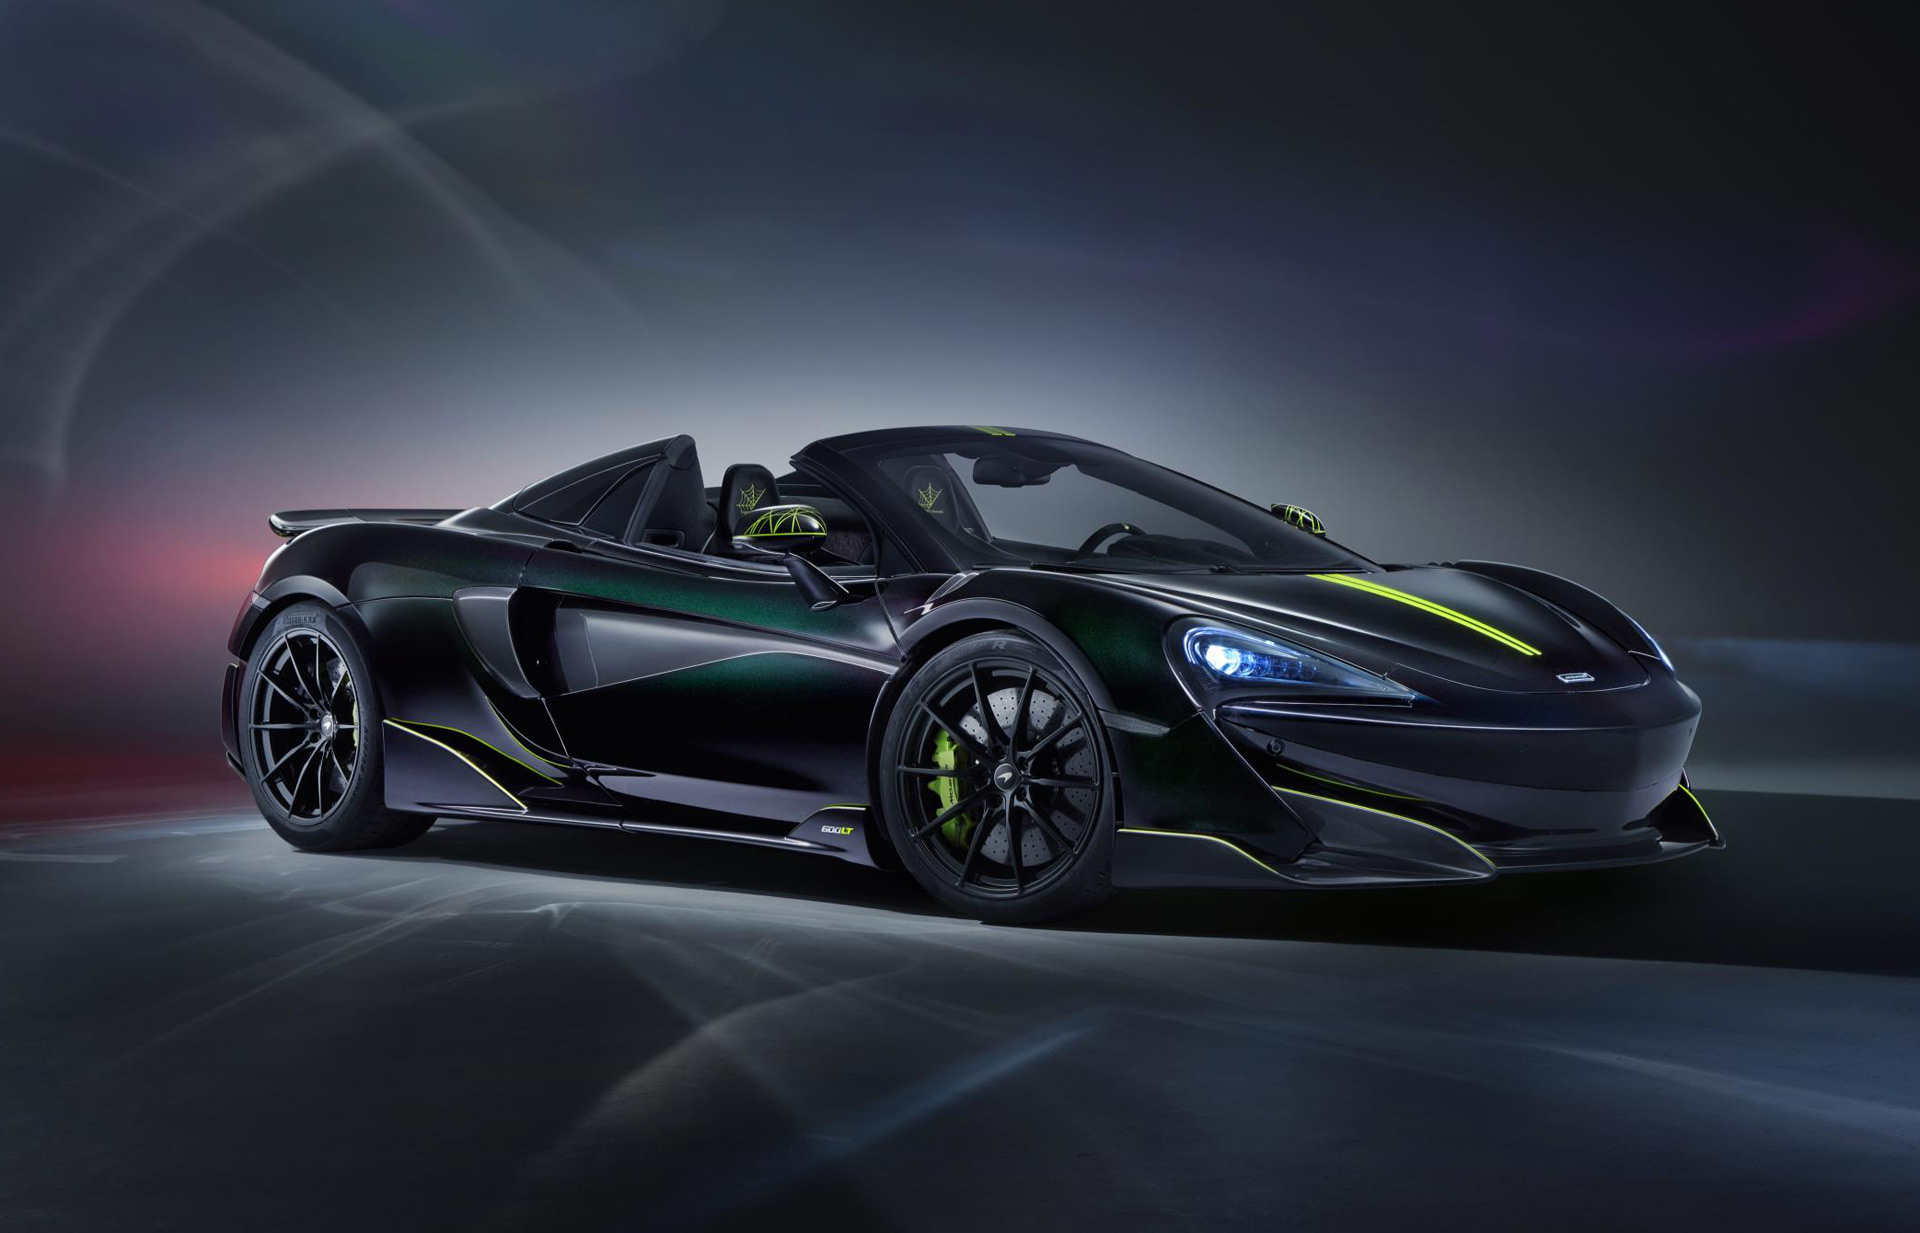 MSO has built a McLaren 600LT for the ultimate Spider-Man fan